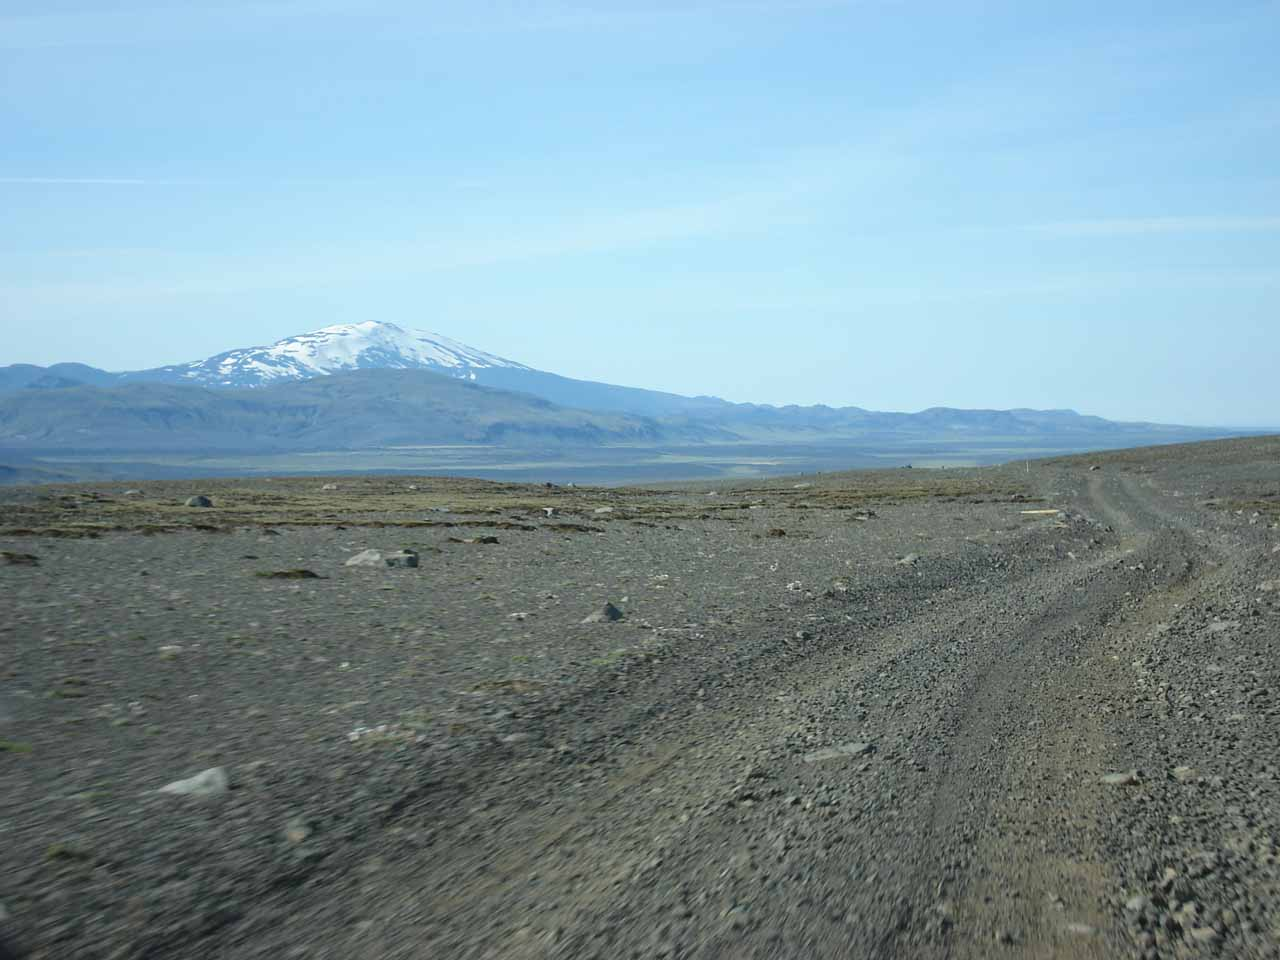 On the black dirt road with Mt Hekla in the distance